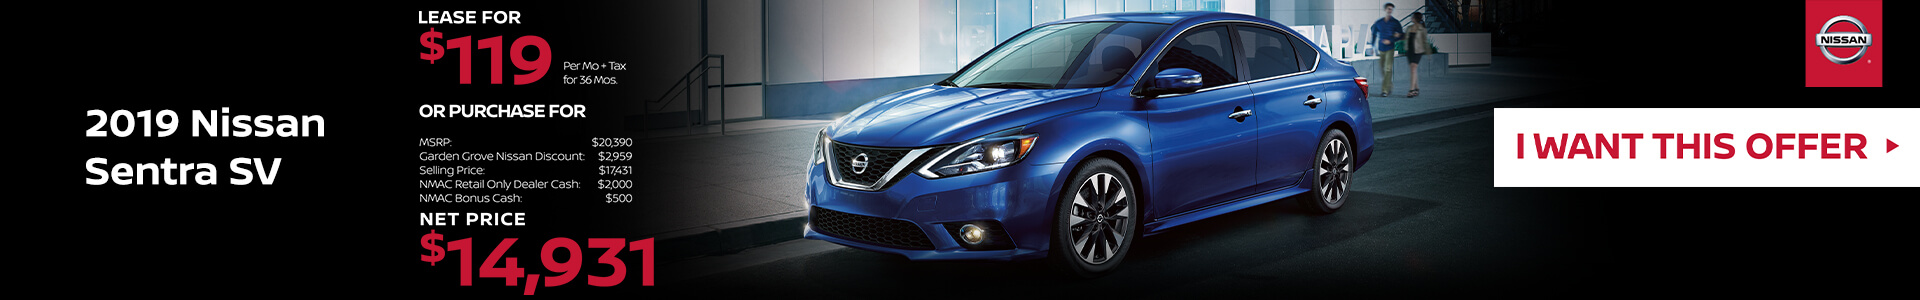 2019 Nissan Sentra Lease for $119